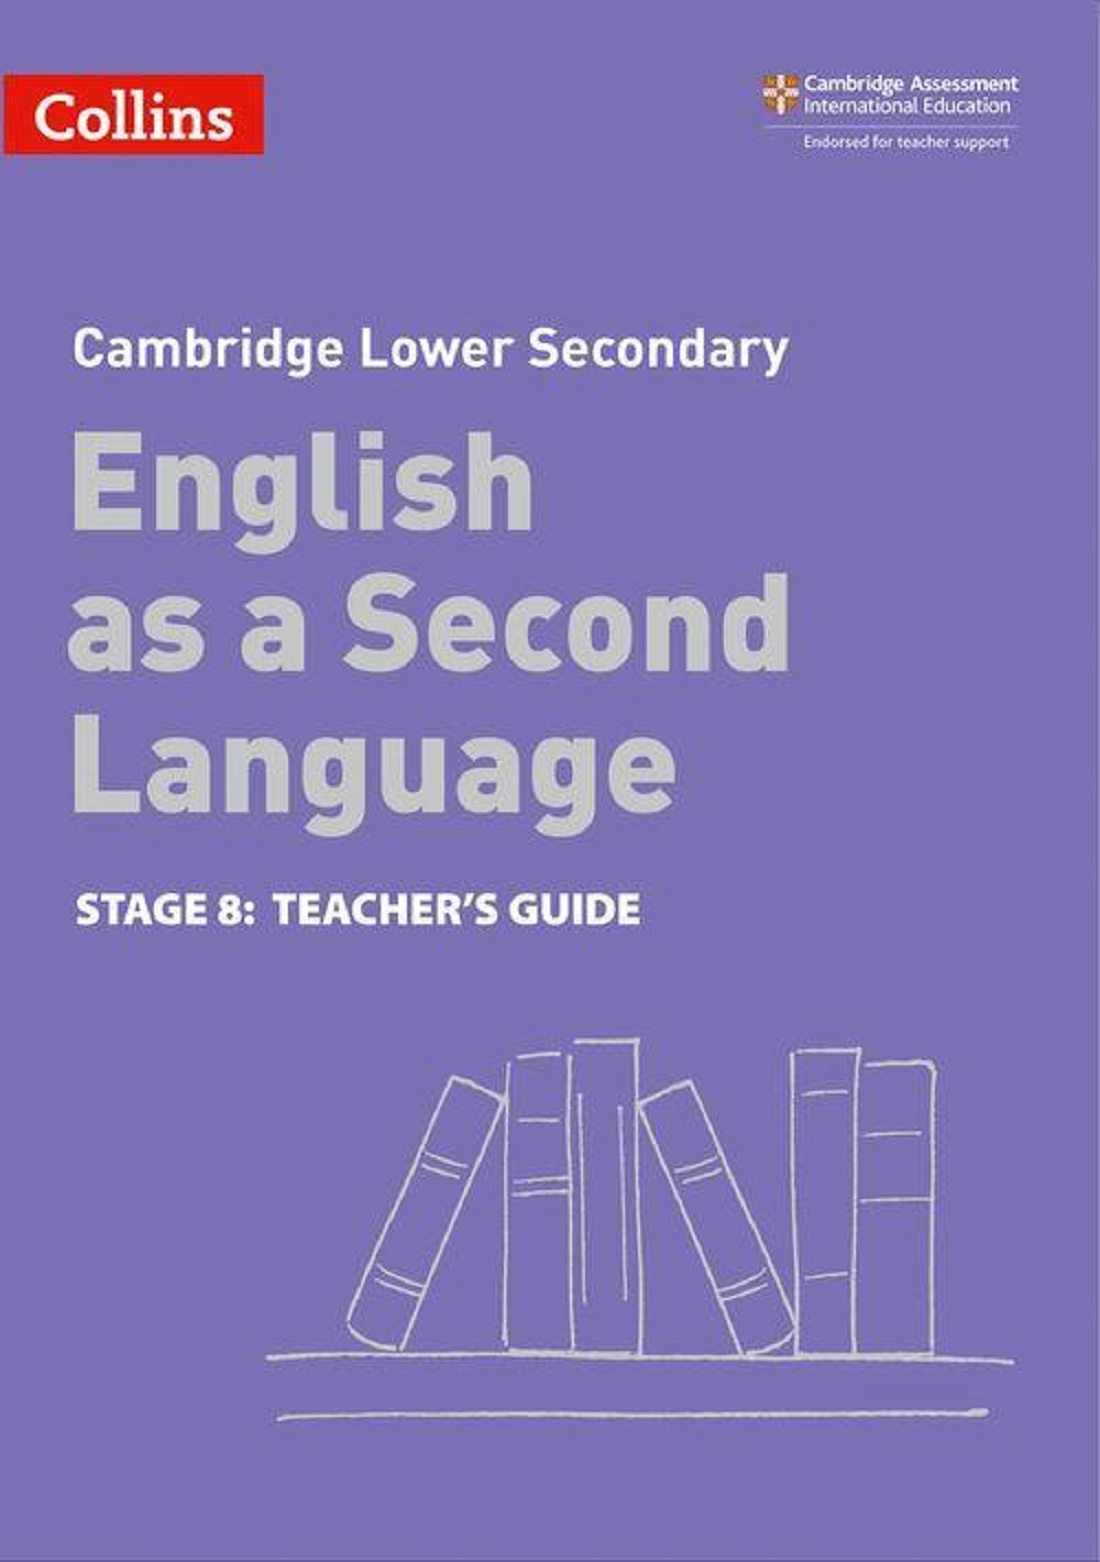 Collins English Stage 8 Teacher's Guide Grade 7 as a Second Language Lower Secondary